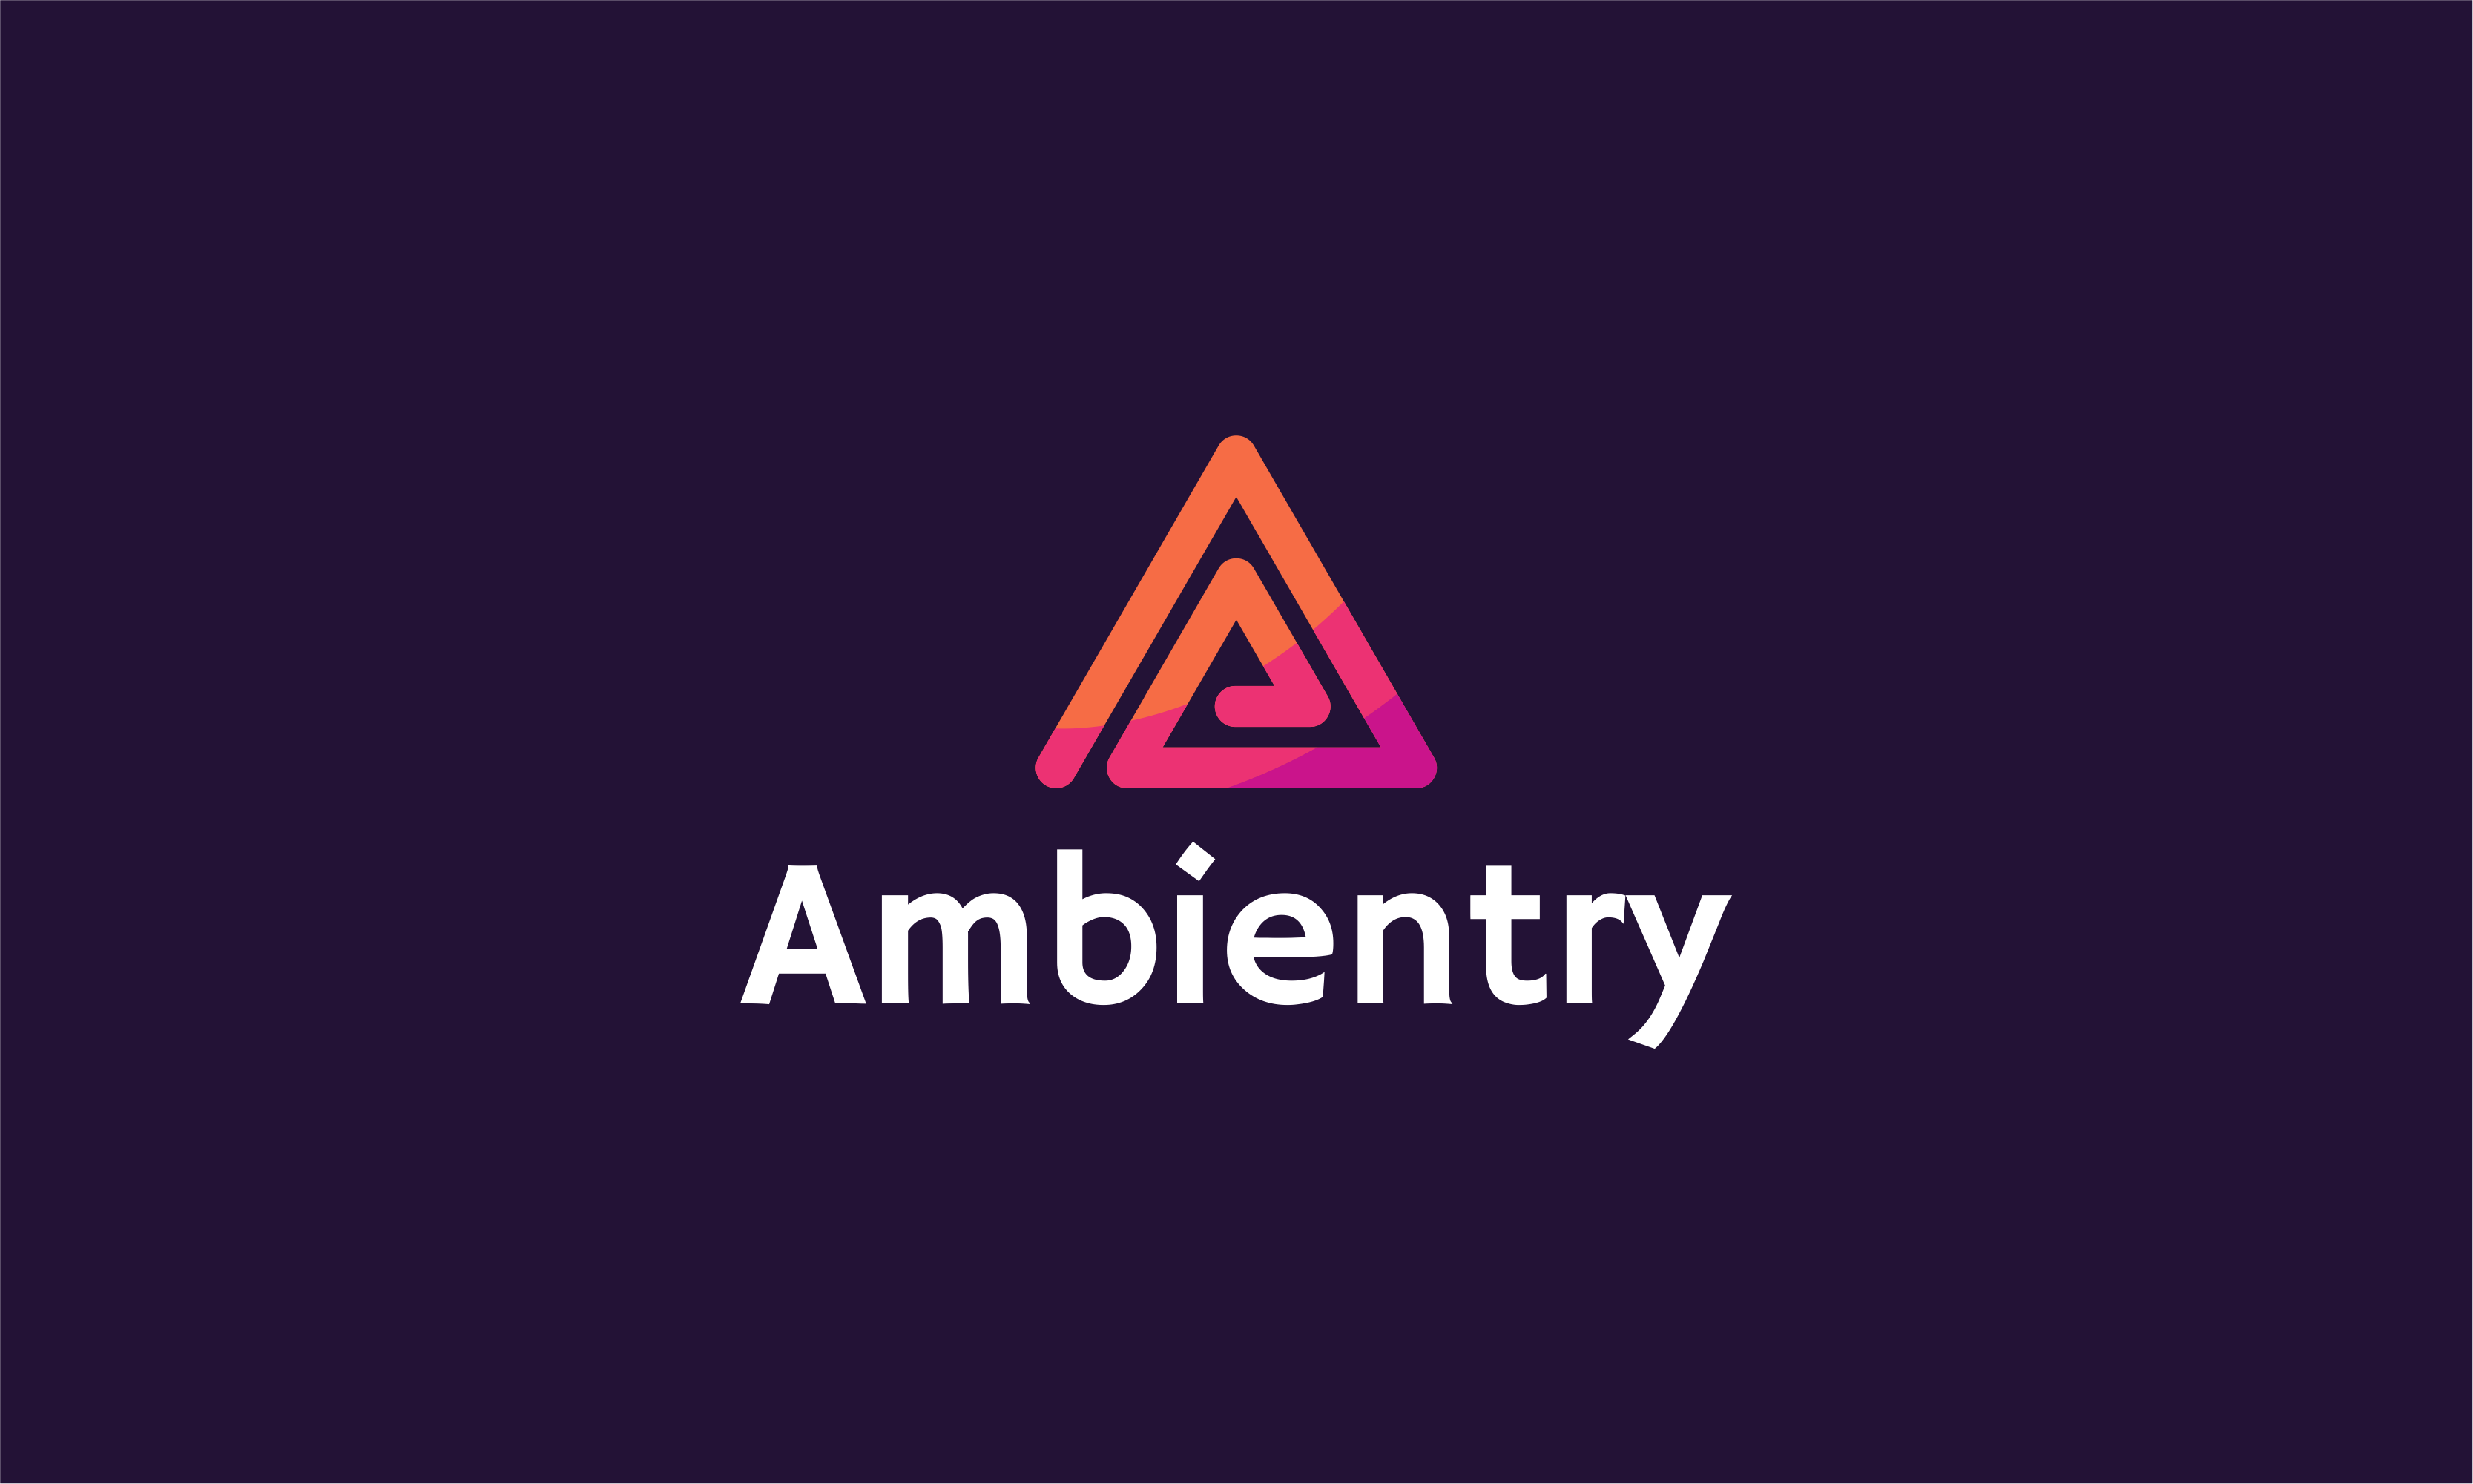 Ambientry